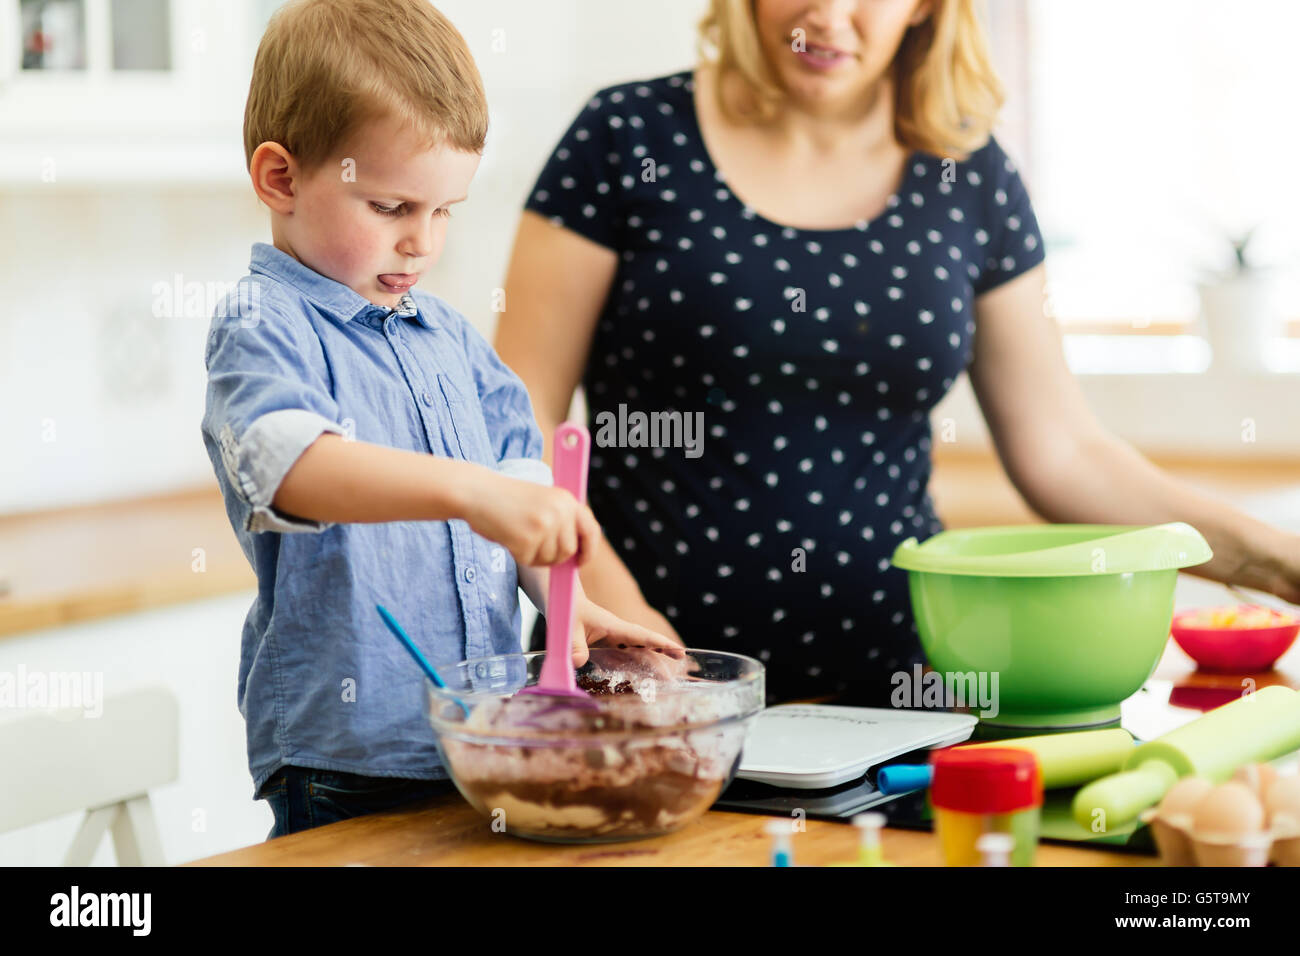 Beautiful child and mother baking in kitchen with love - Stock Image